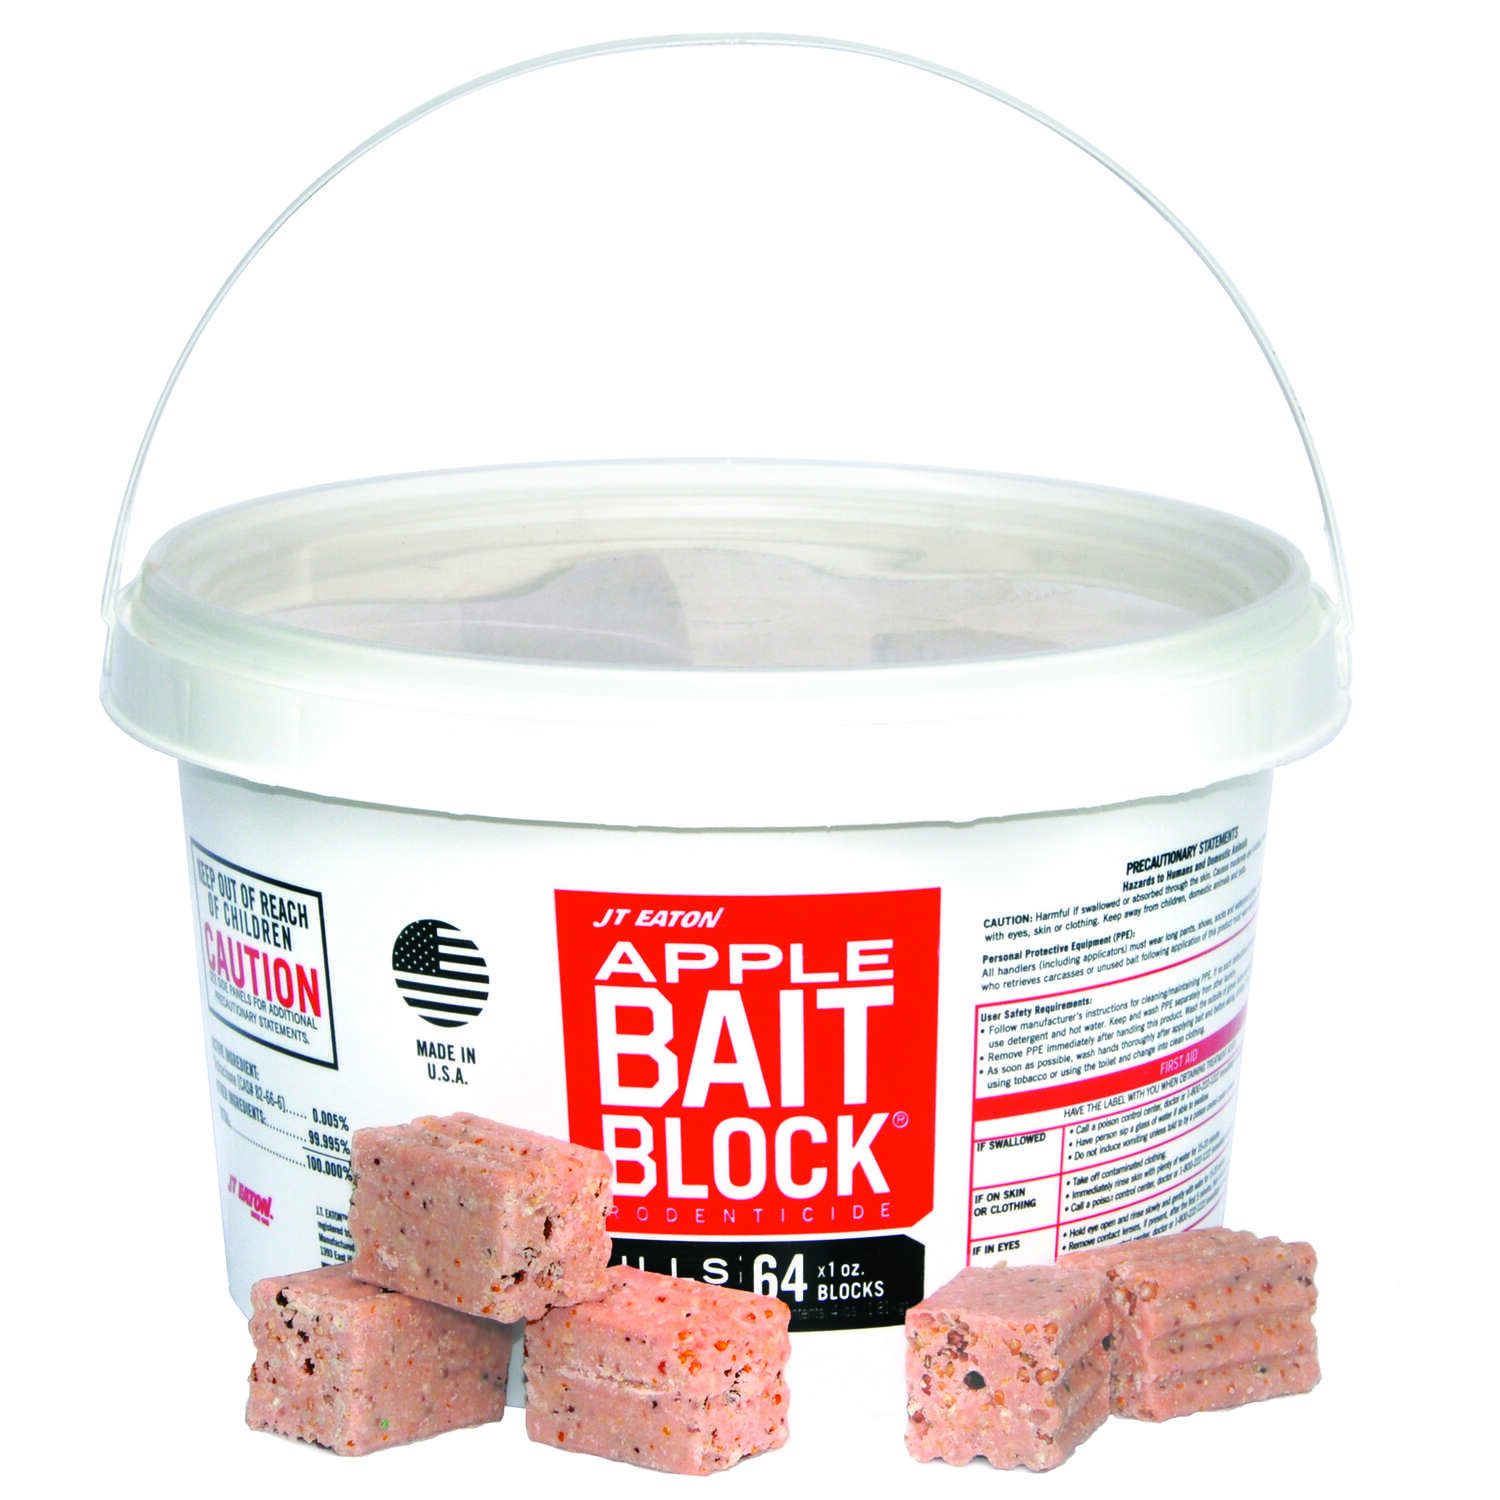 JT Eaton  Bait  Blocks  For Mice and Rats 64 pk